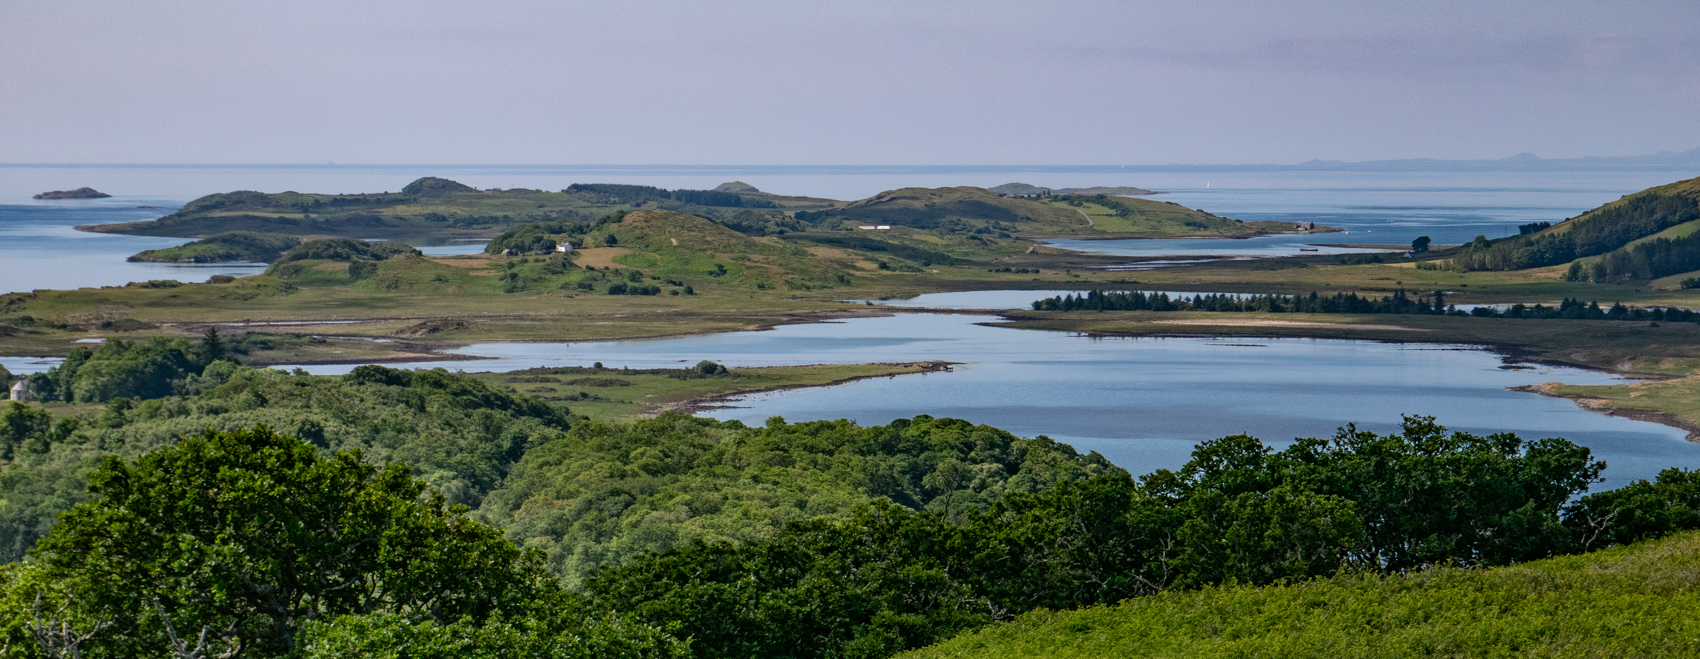 The heart of Argyll - perfect for the great outdoors on water or on land